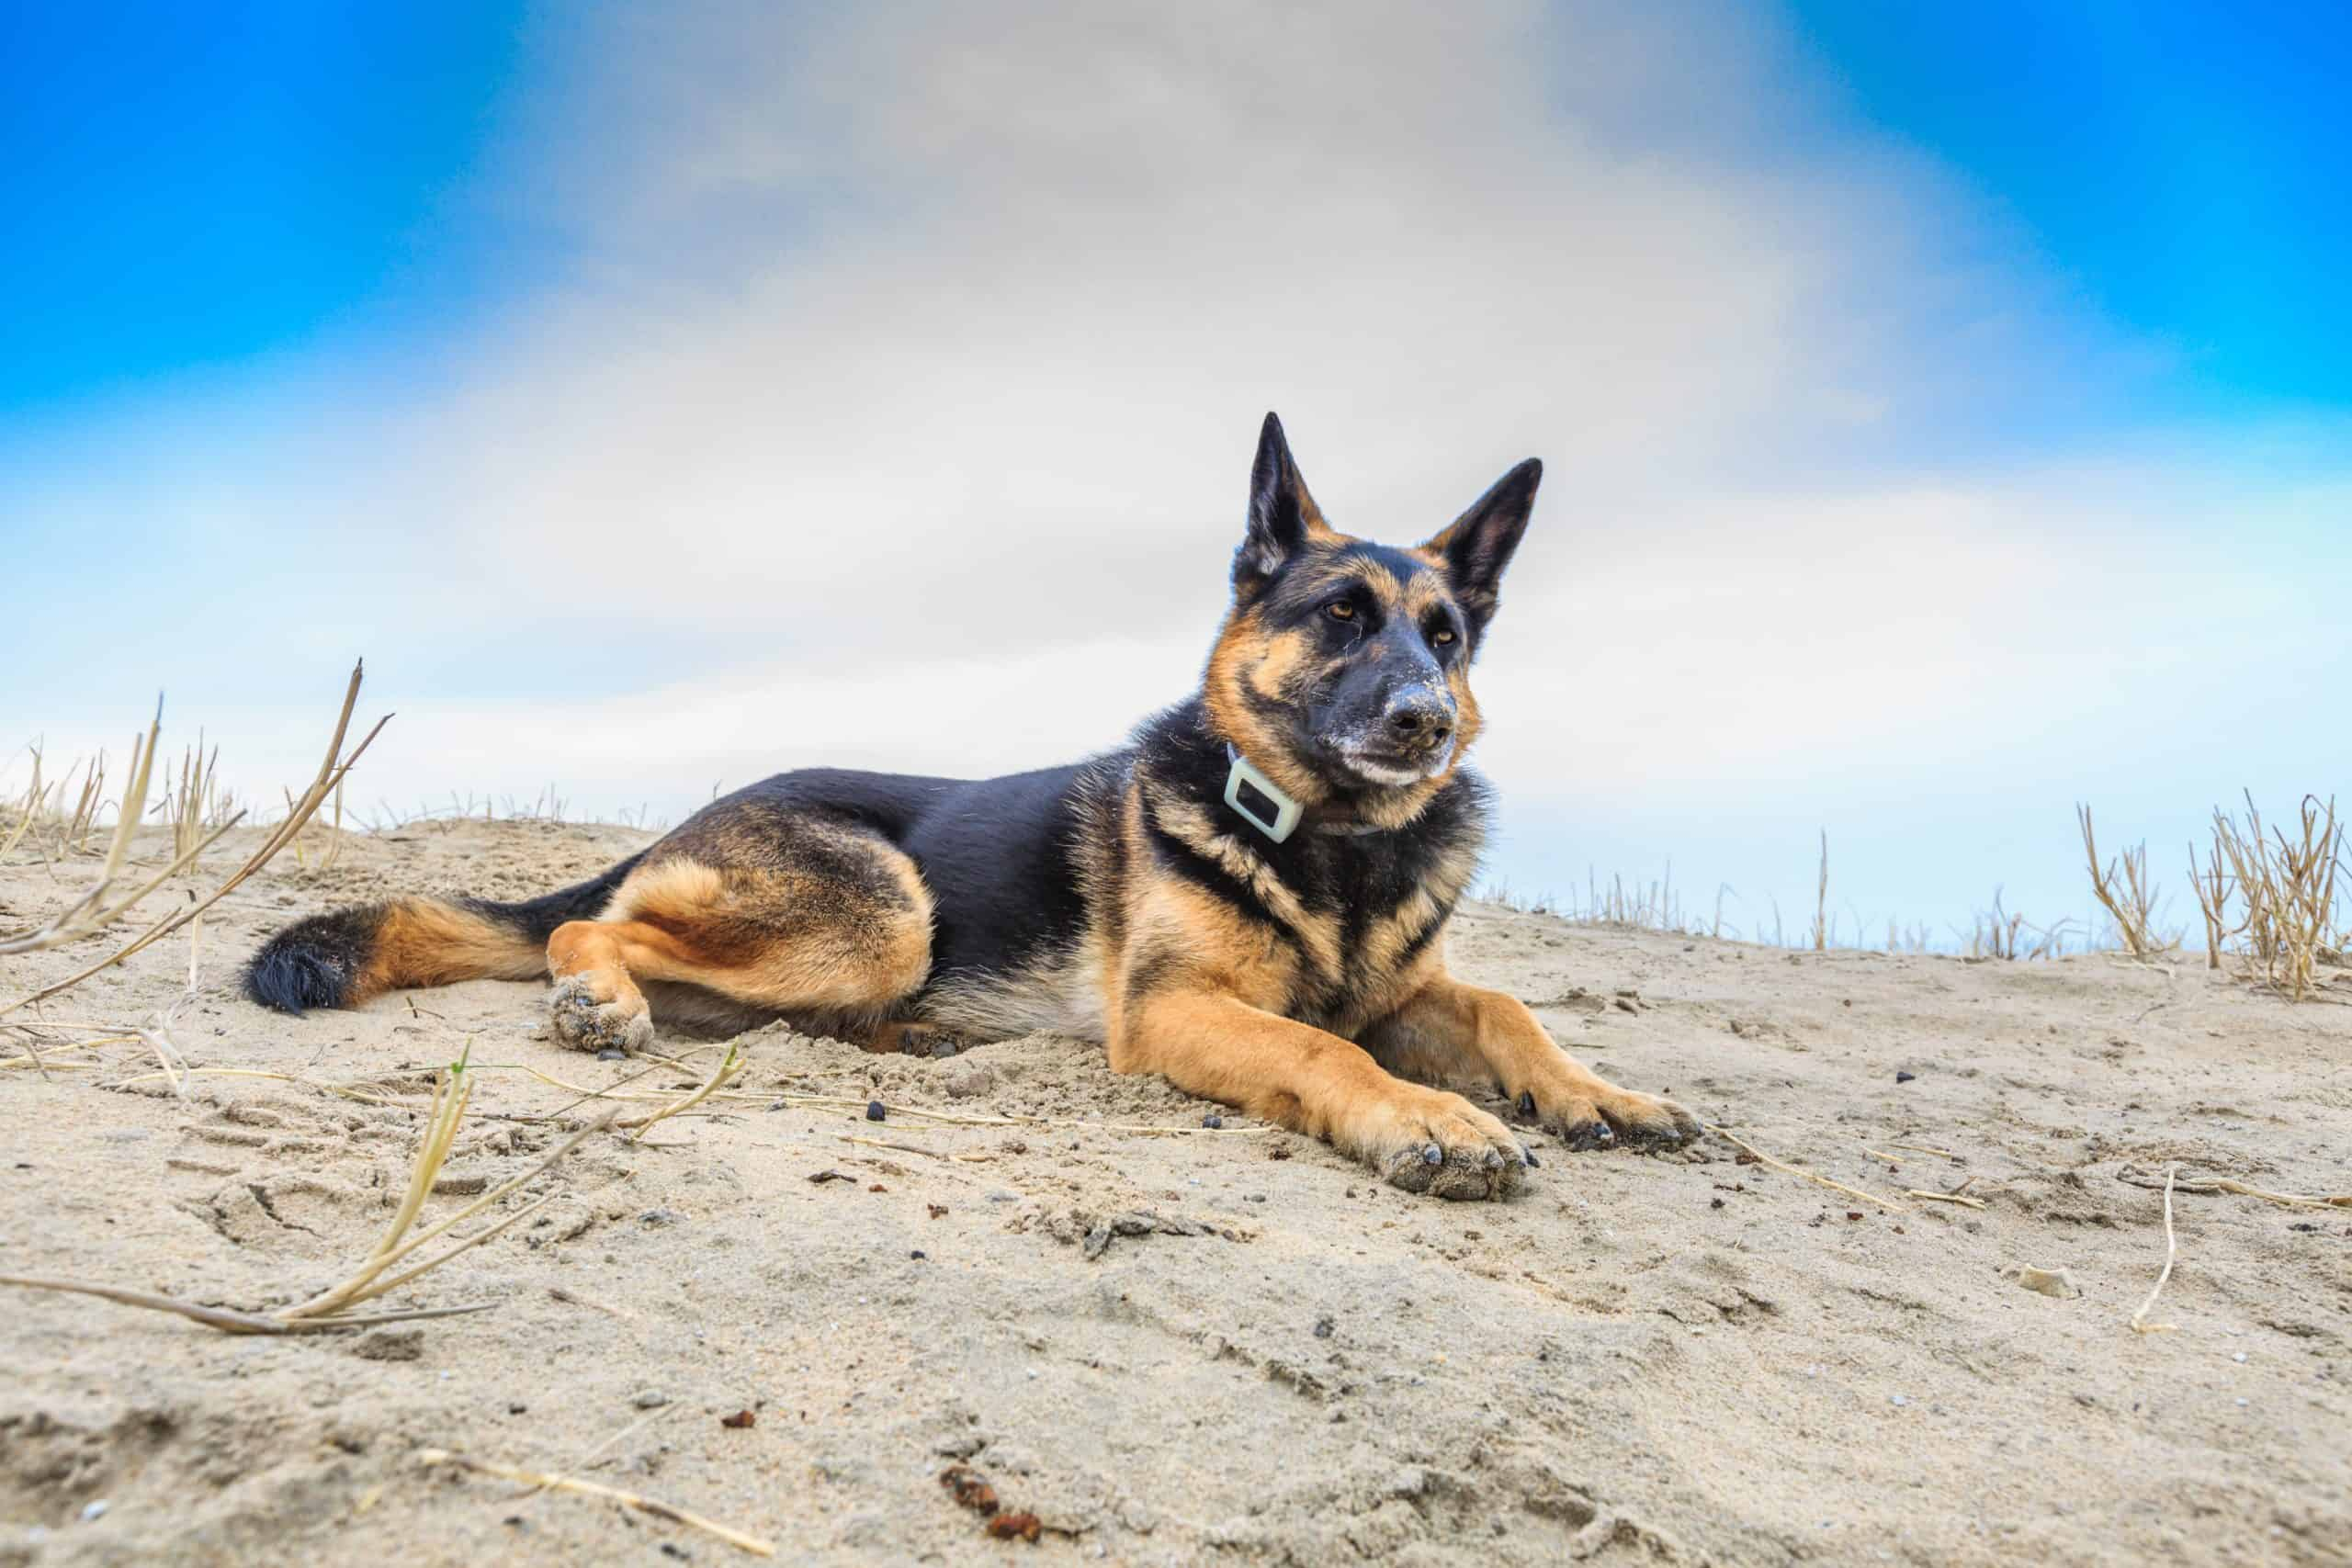 German shepherd wearing a smart dog collar with GPS tracker sits on the beach.